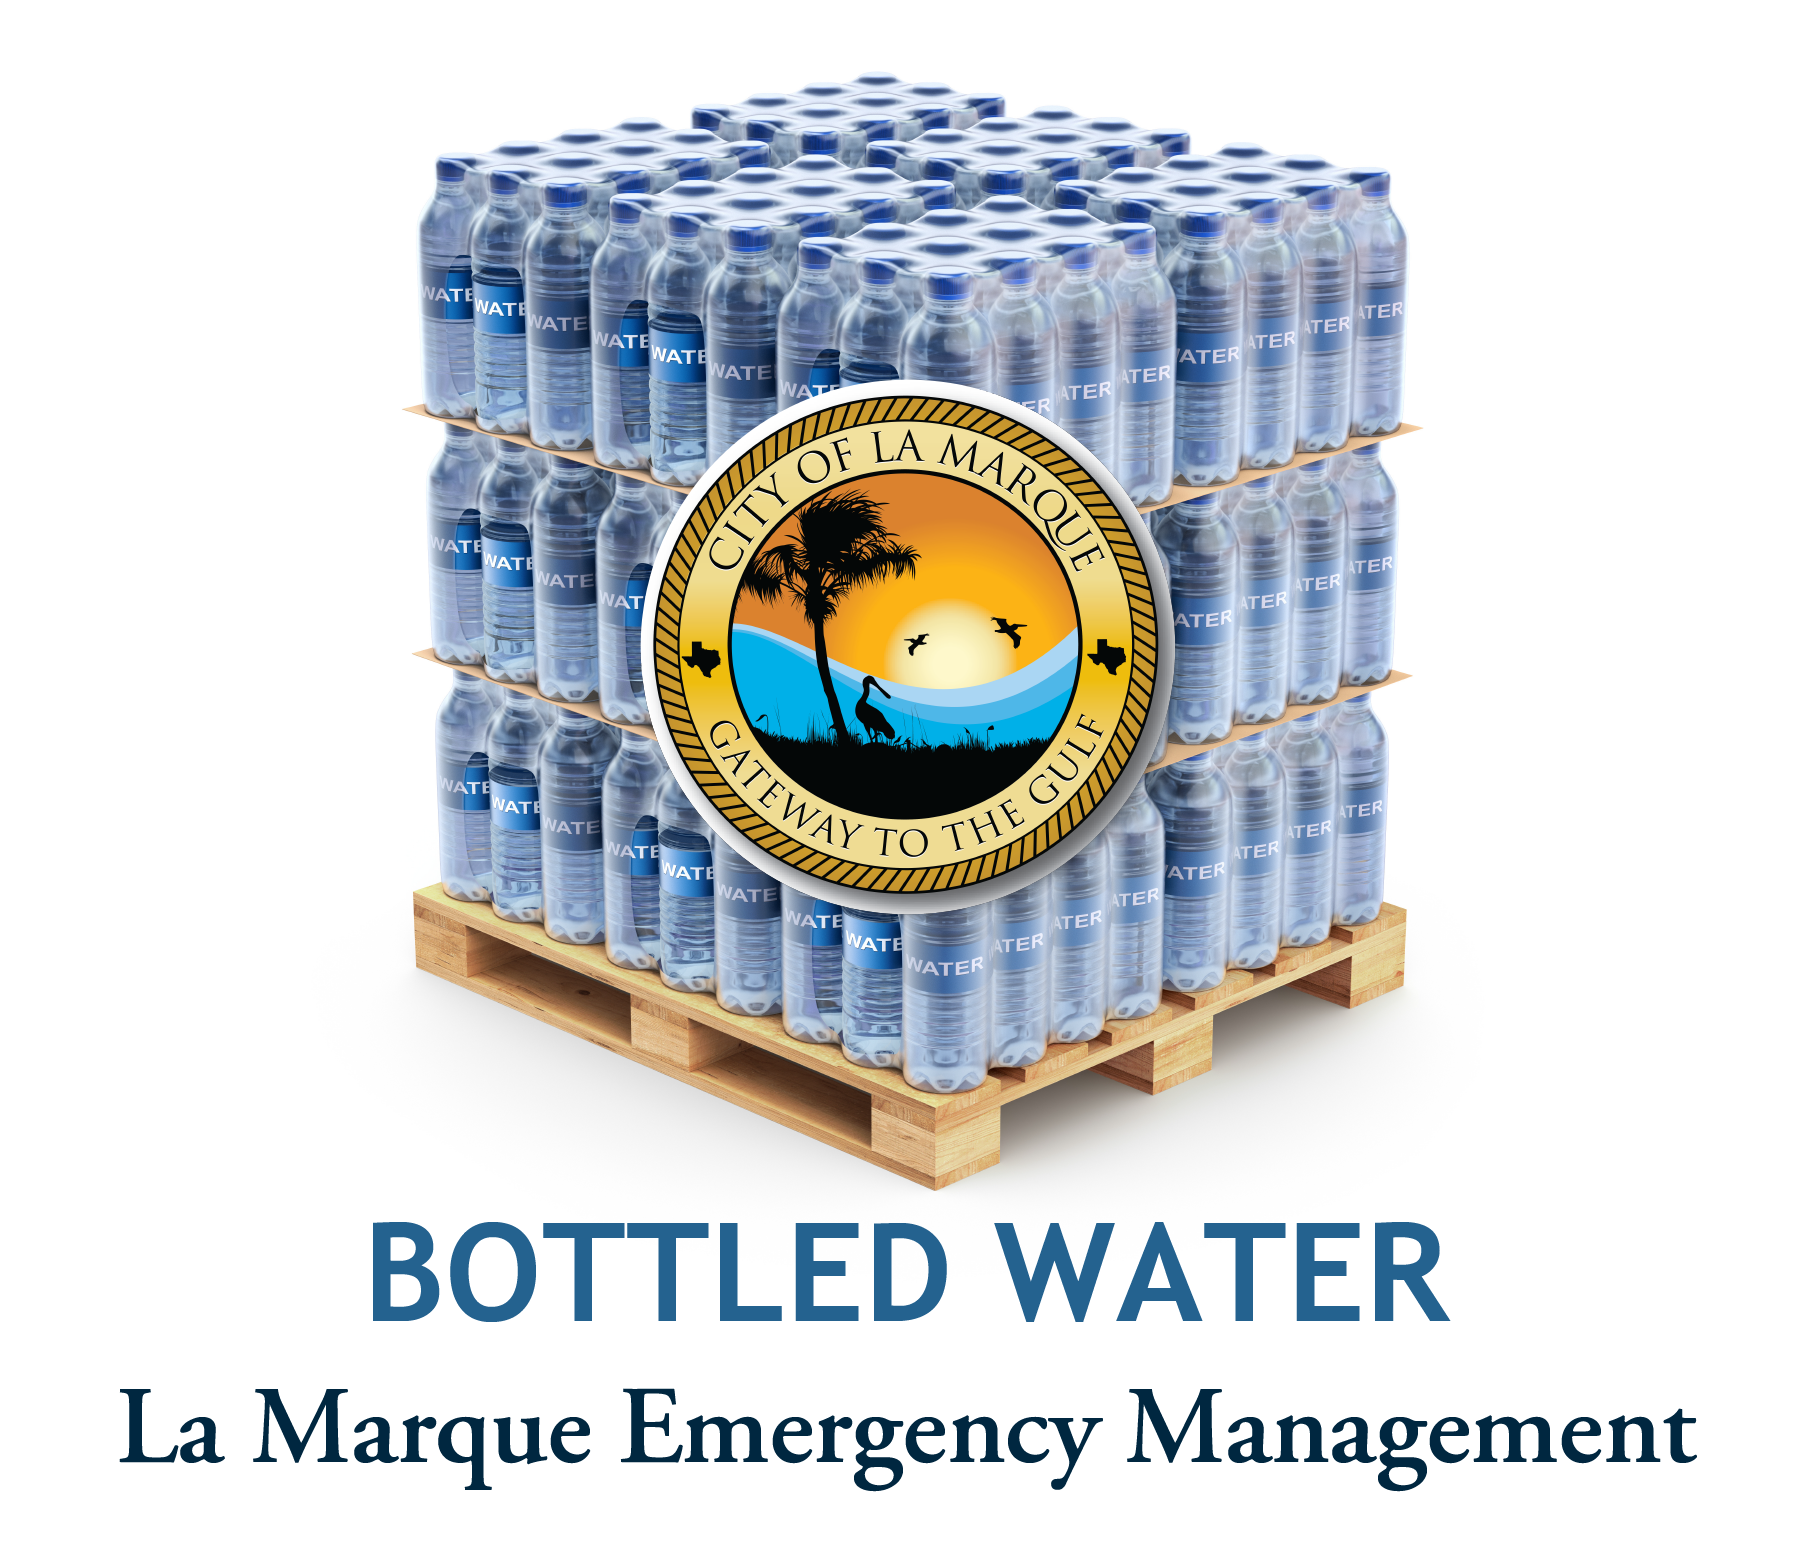 Bottled water pickup graphic showing a pallet of water with city logo